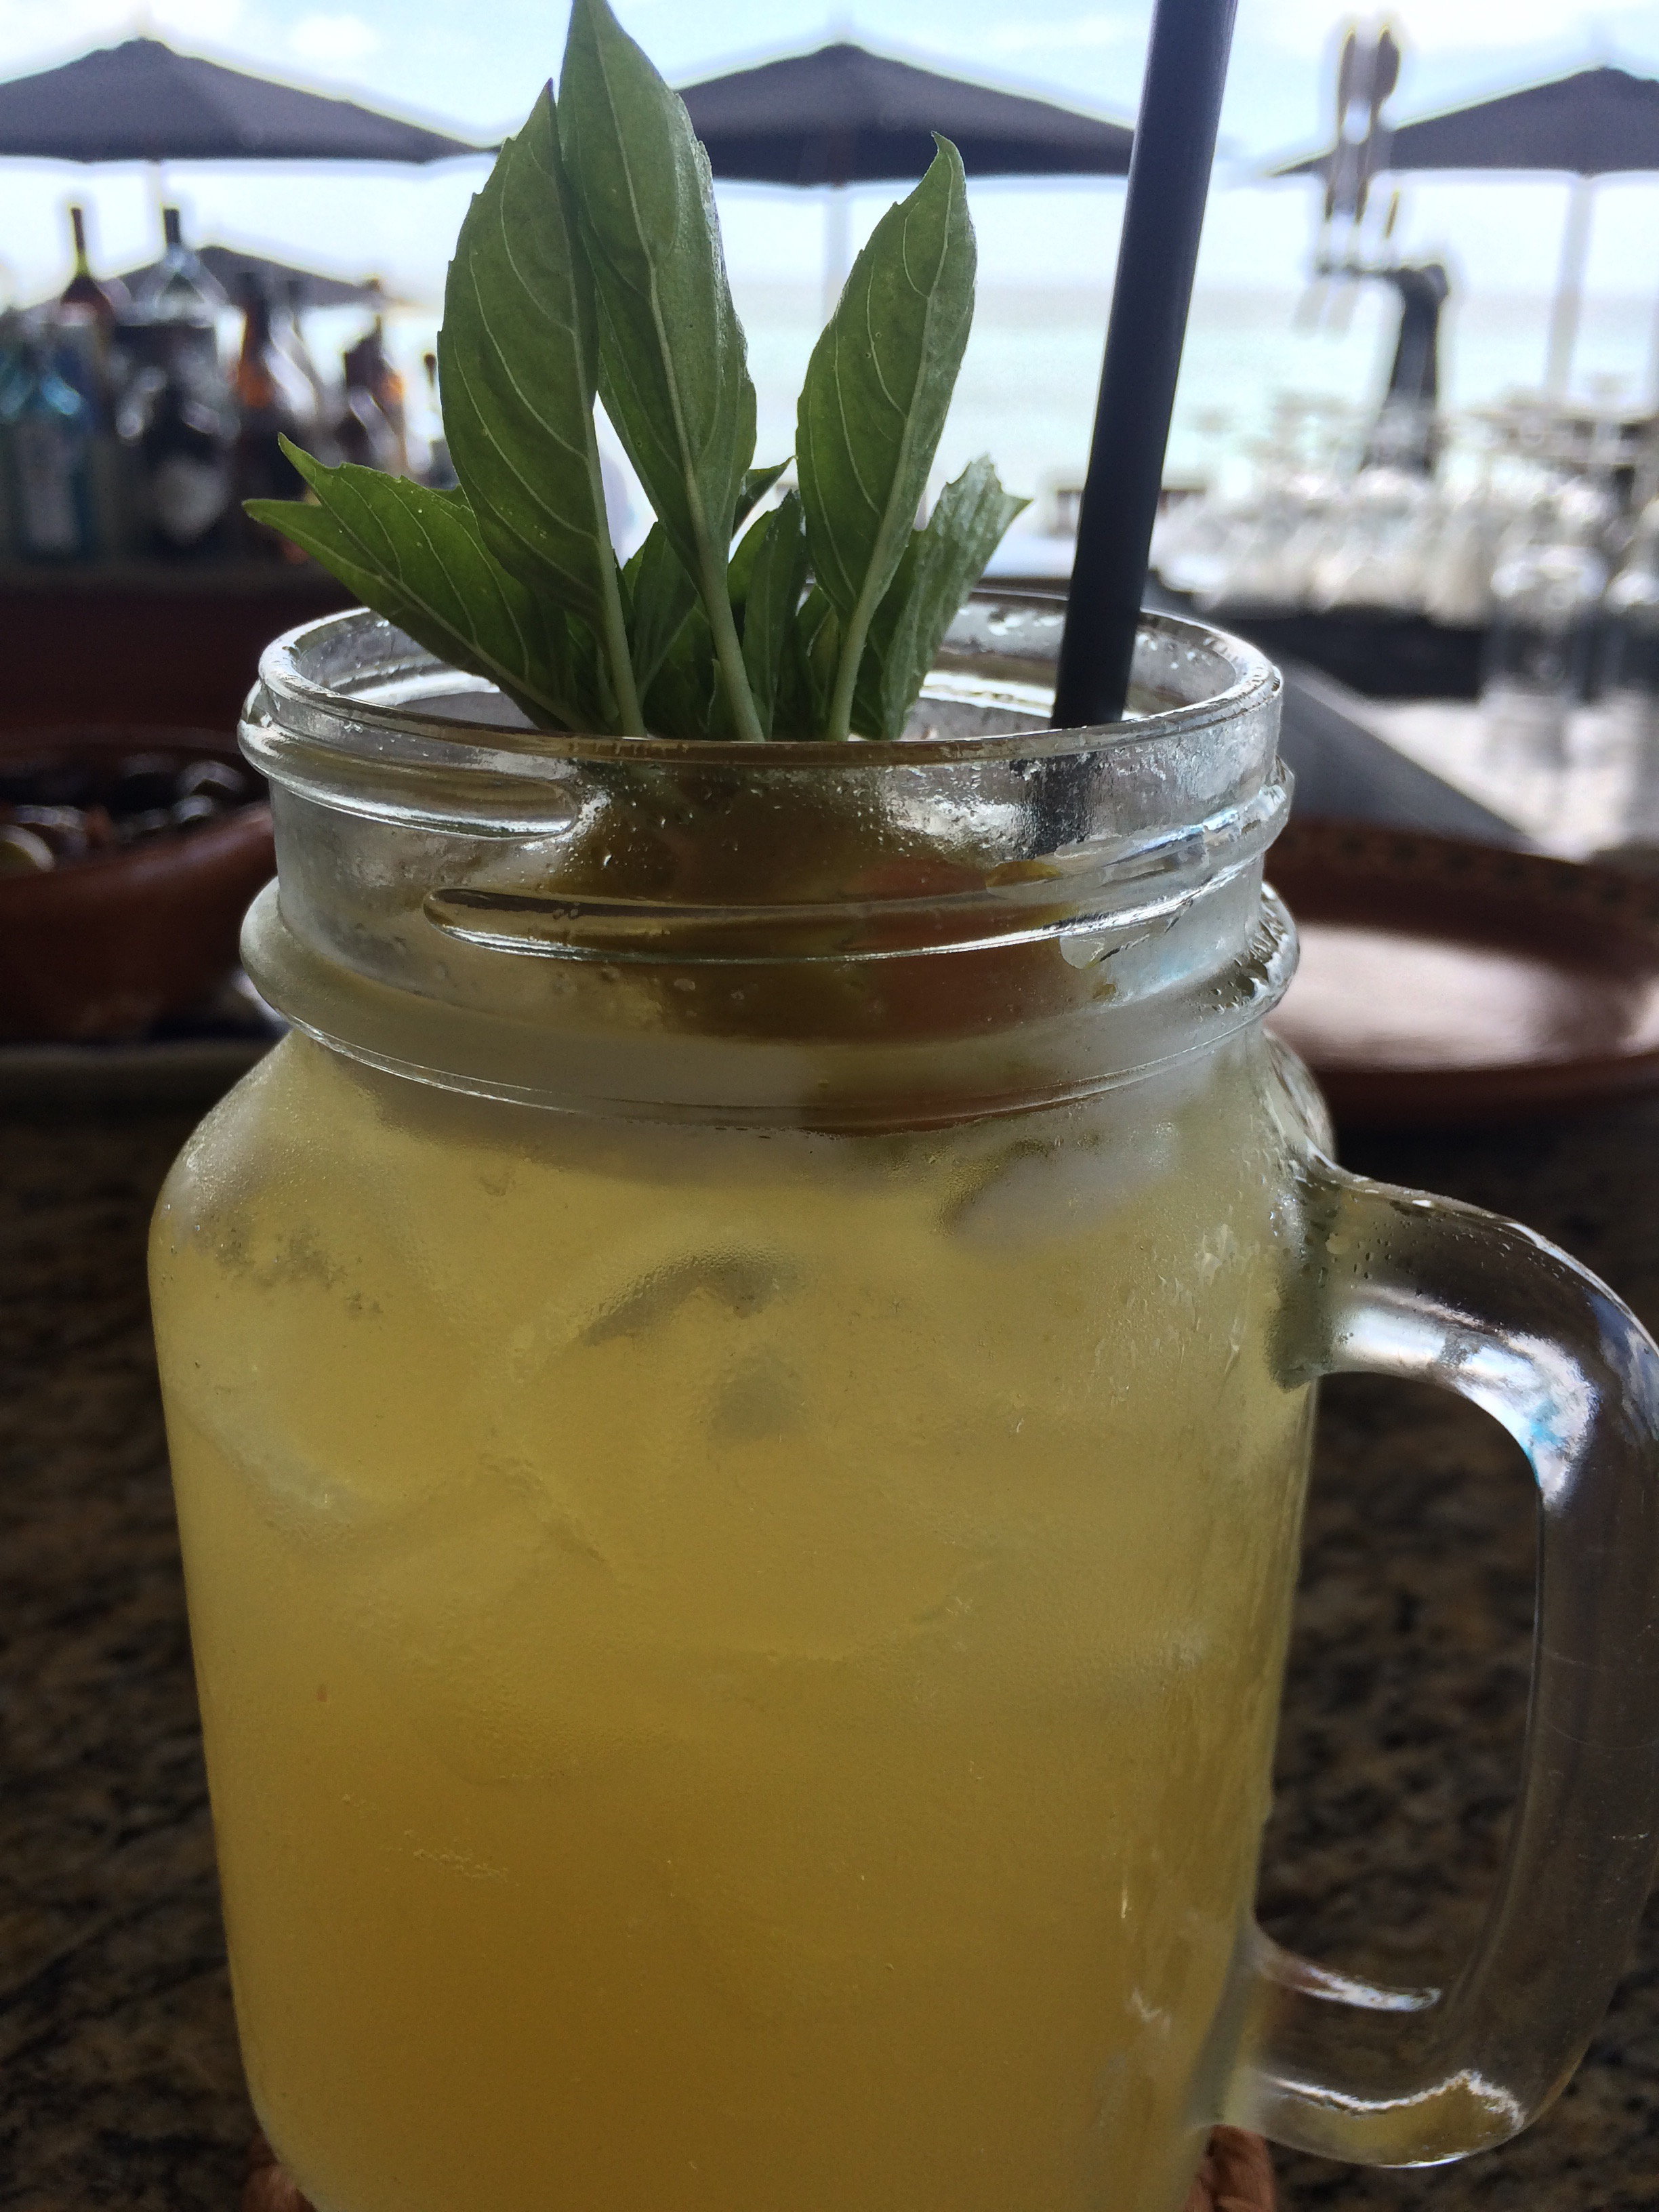 Roasted Pineapple Margarita from Punta Bonita at Rosewood Mayakoba